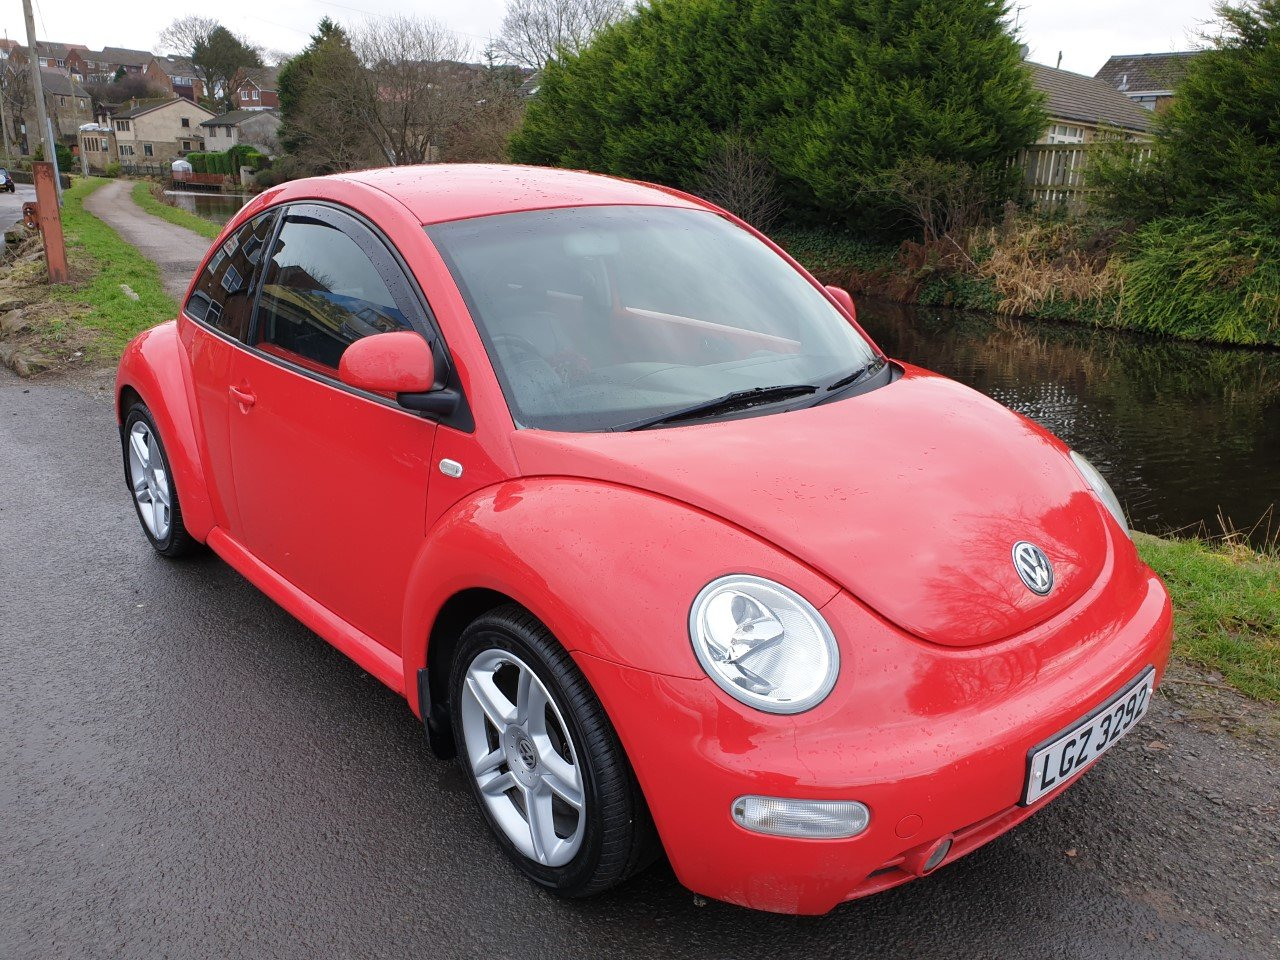 2002 Volkswagen Beetle V5 2.3 With full read and black leather. For Sale (picture 1 of 6)